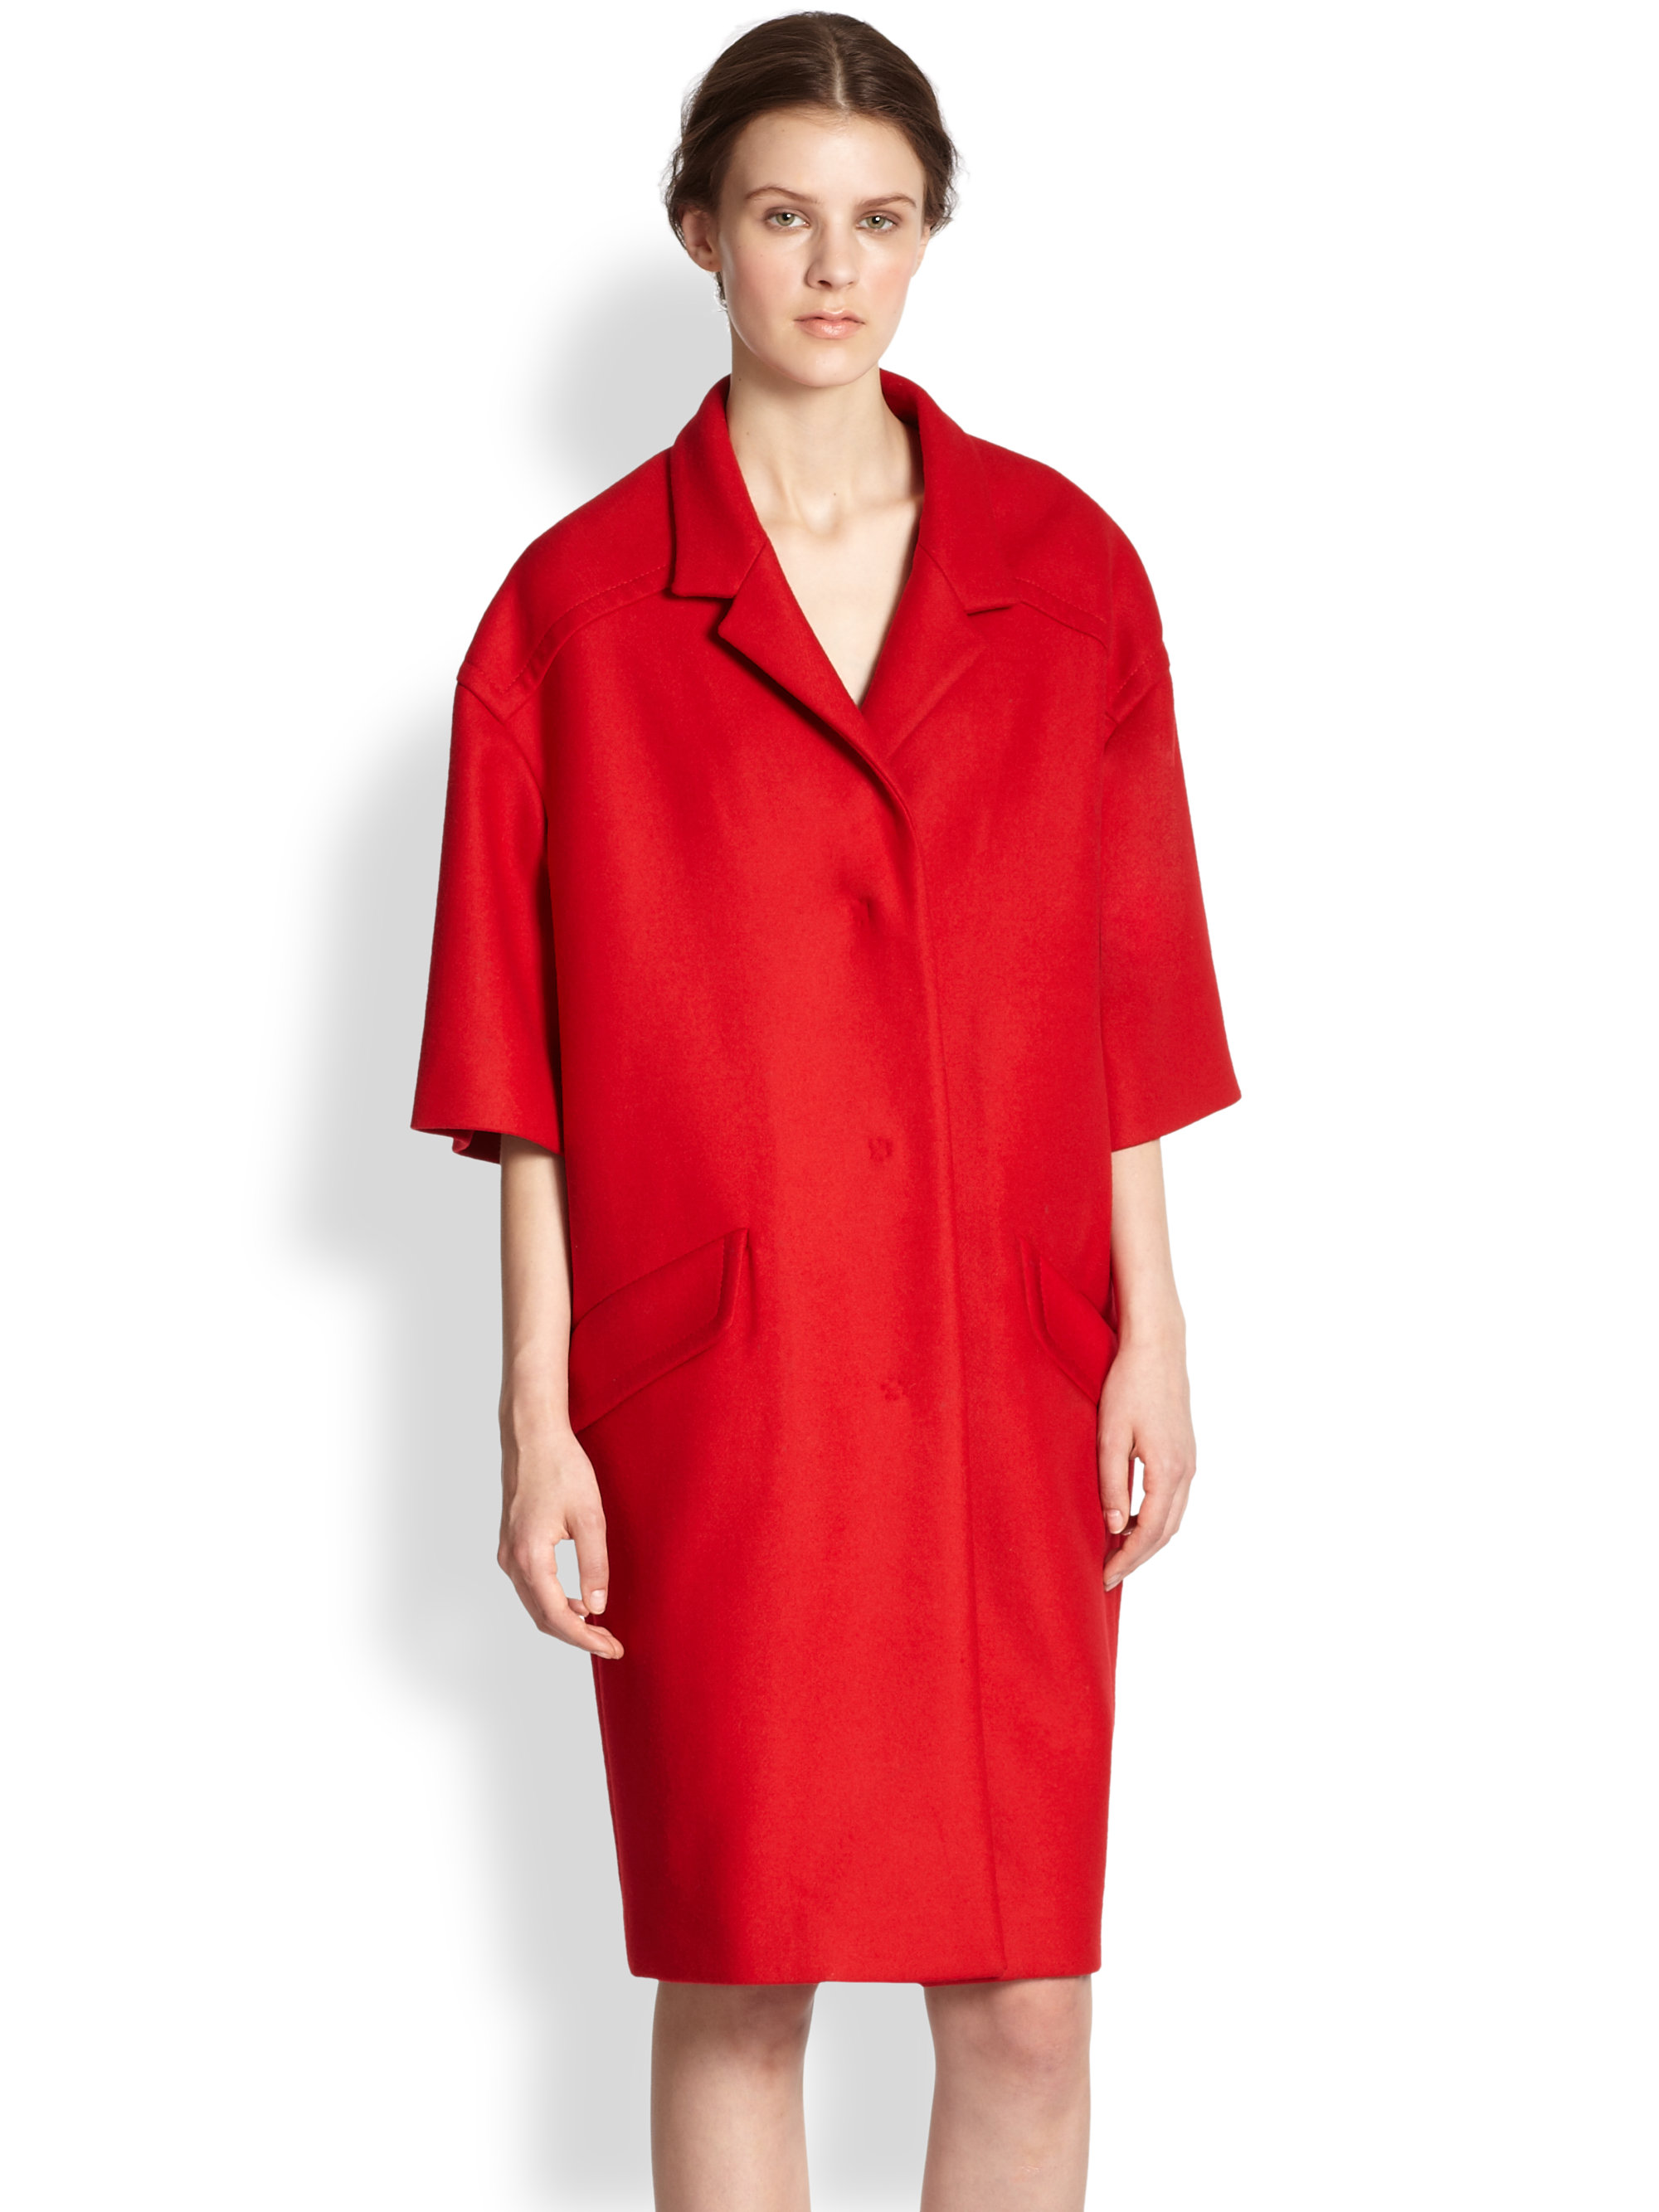 Dolce & gabbana Oversized Wool Coat in Red | Lyst